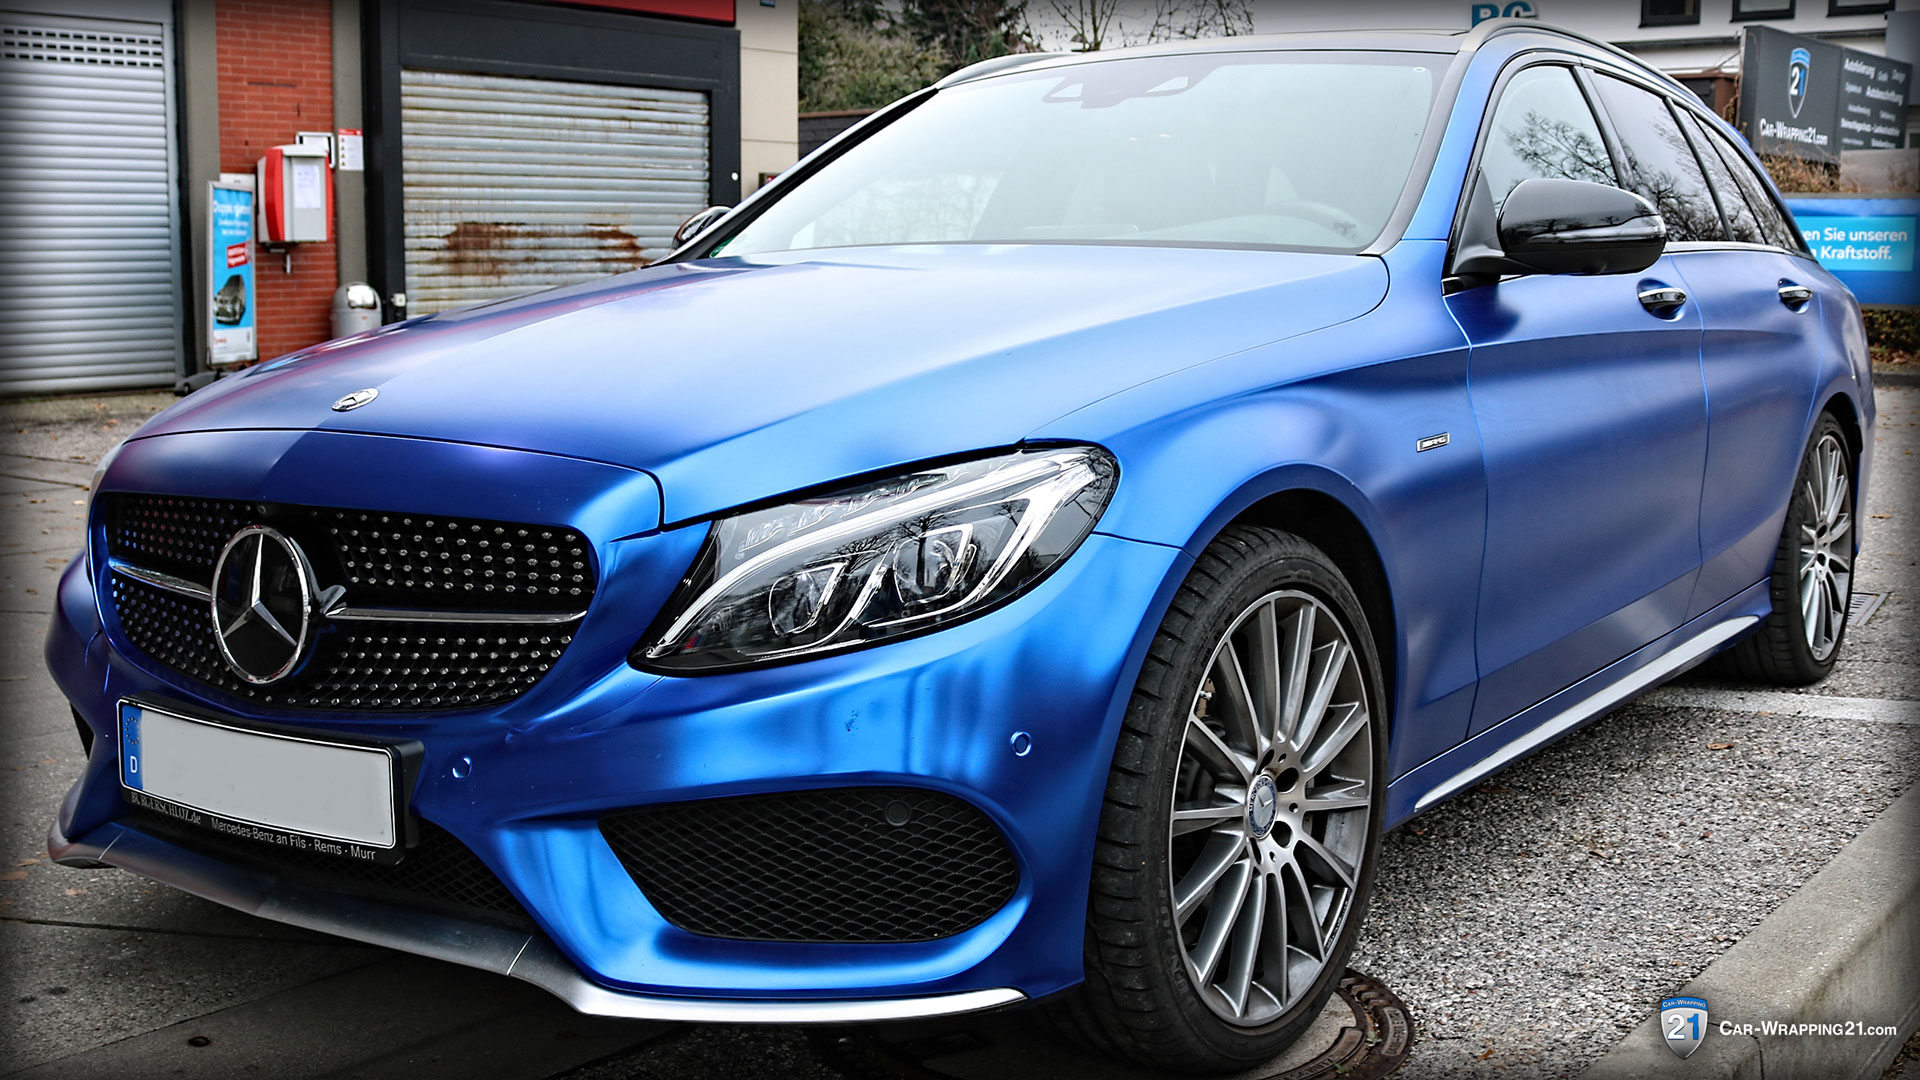 Mercedes-E-Klasse-Autofolierung-in-Blau-Chrome-Matt